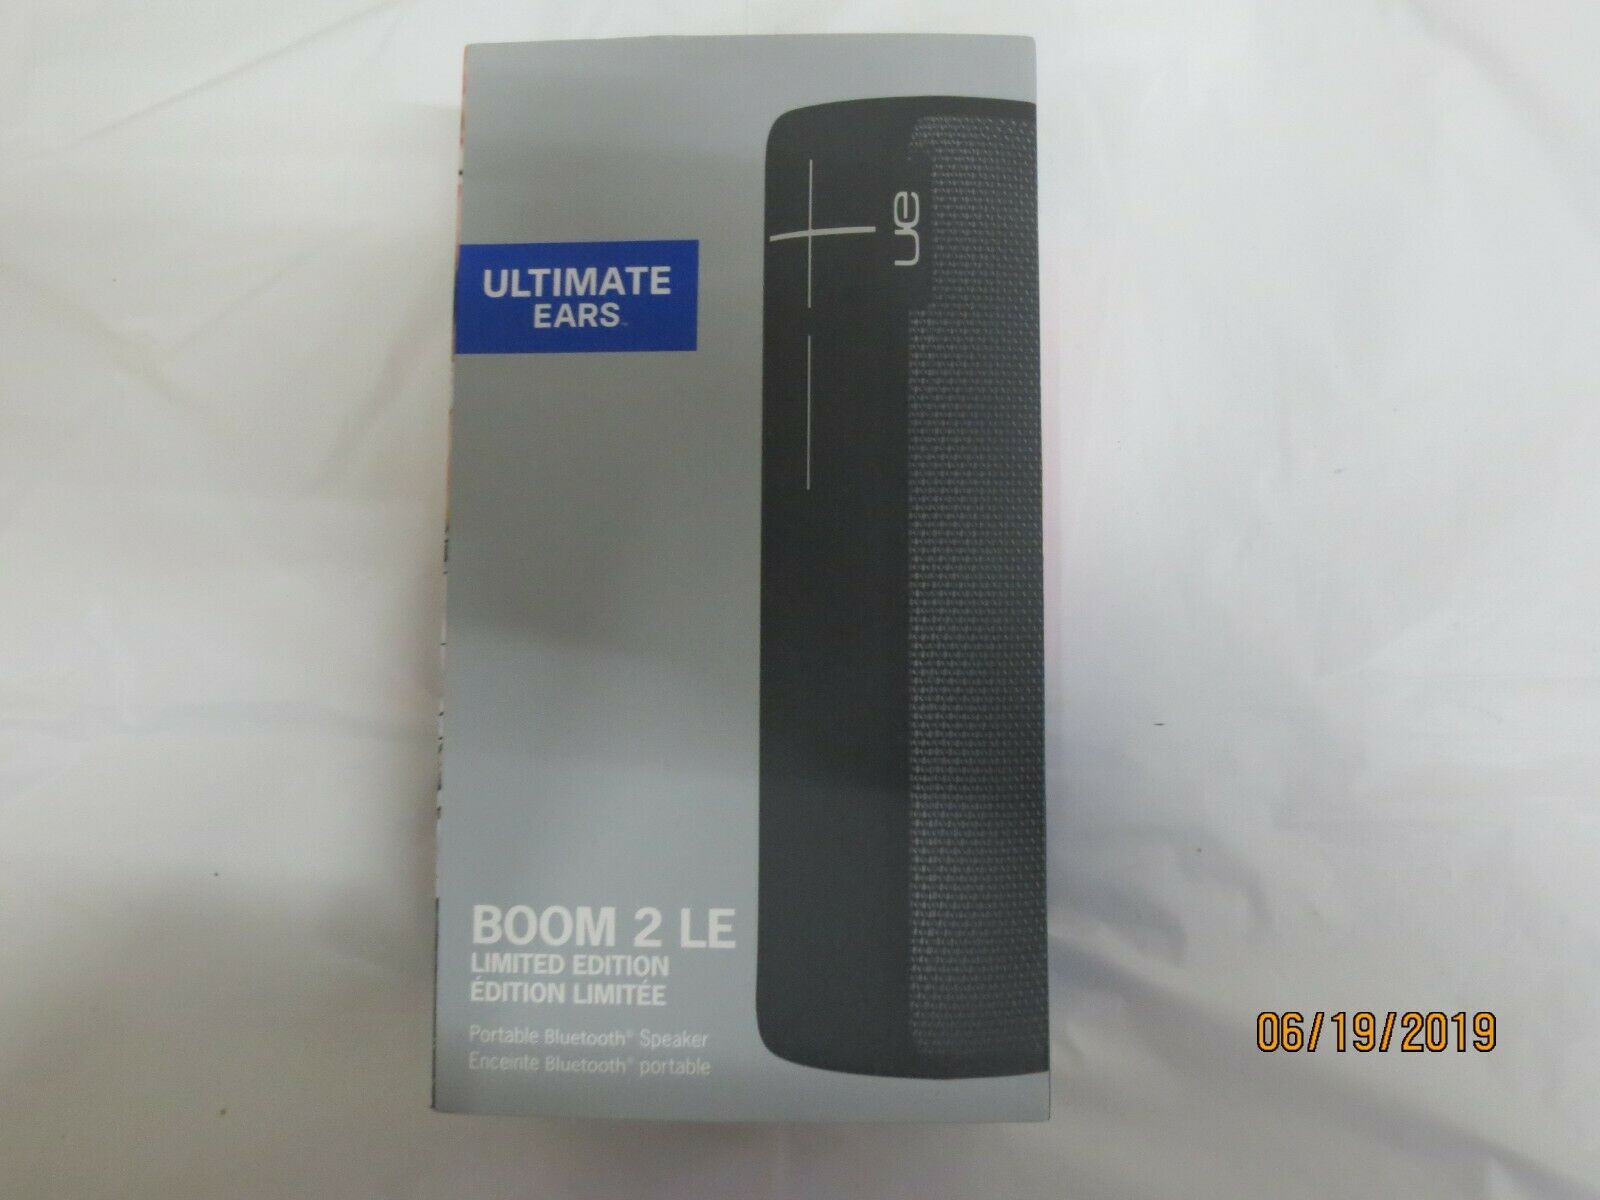 Ultimate Ears BOOM 2 LE Limited Edition Wireless Speaker Pha